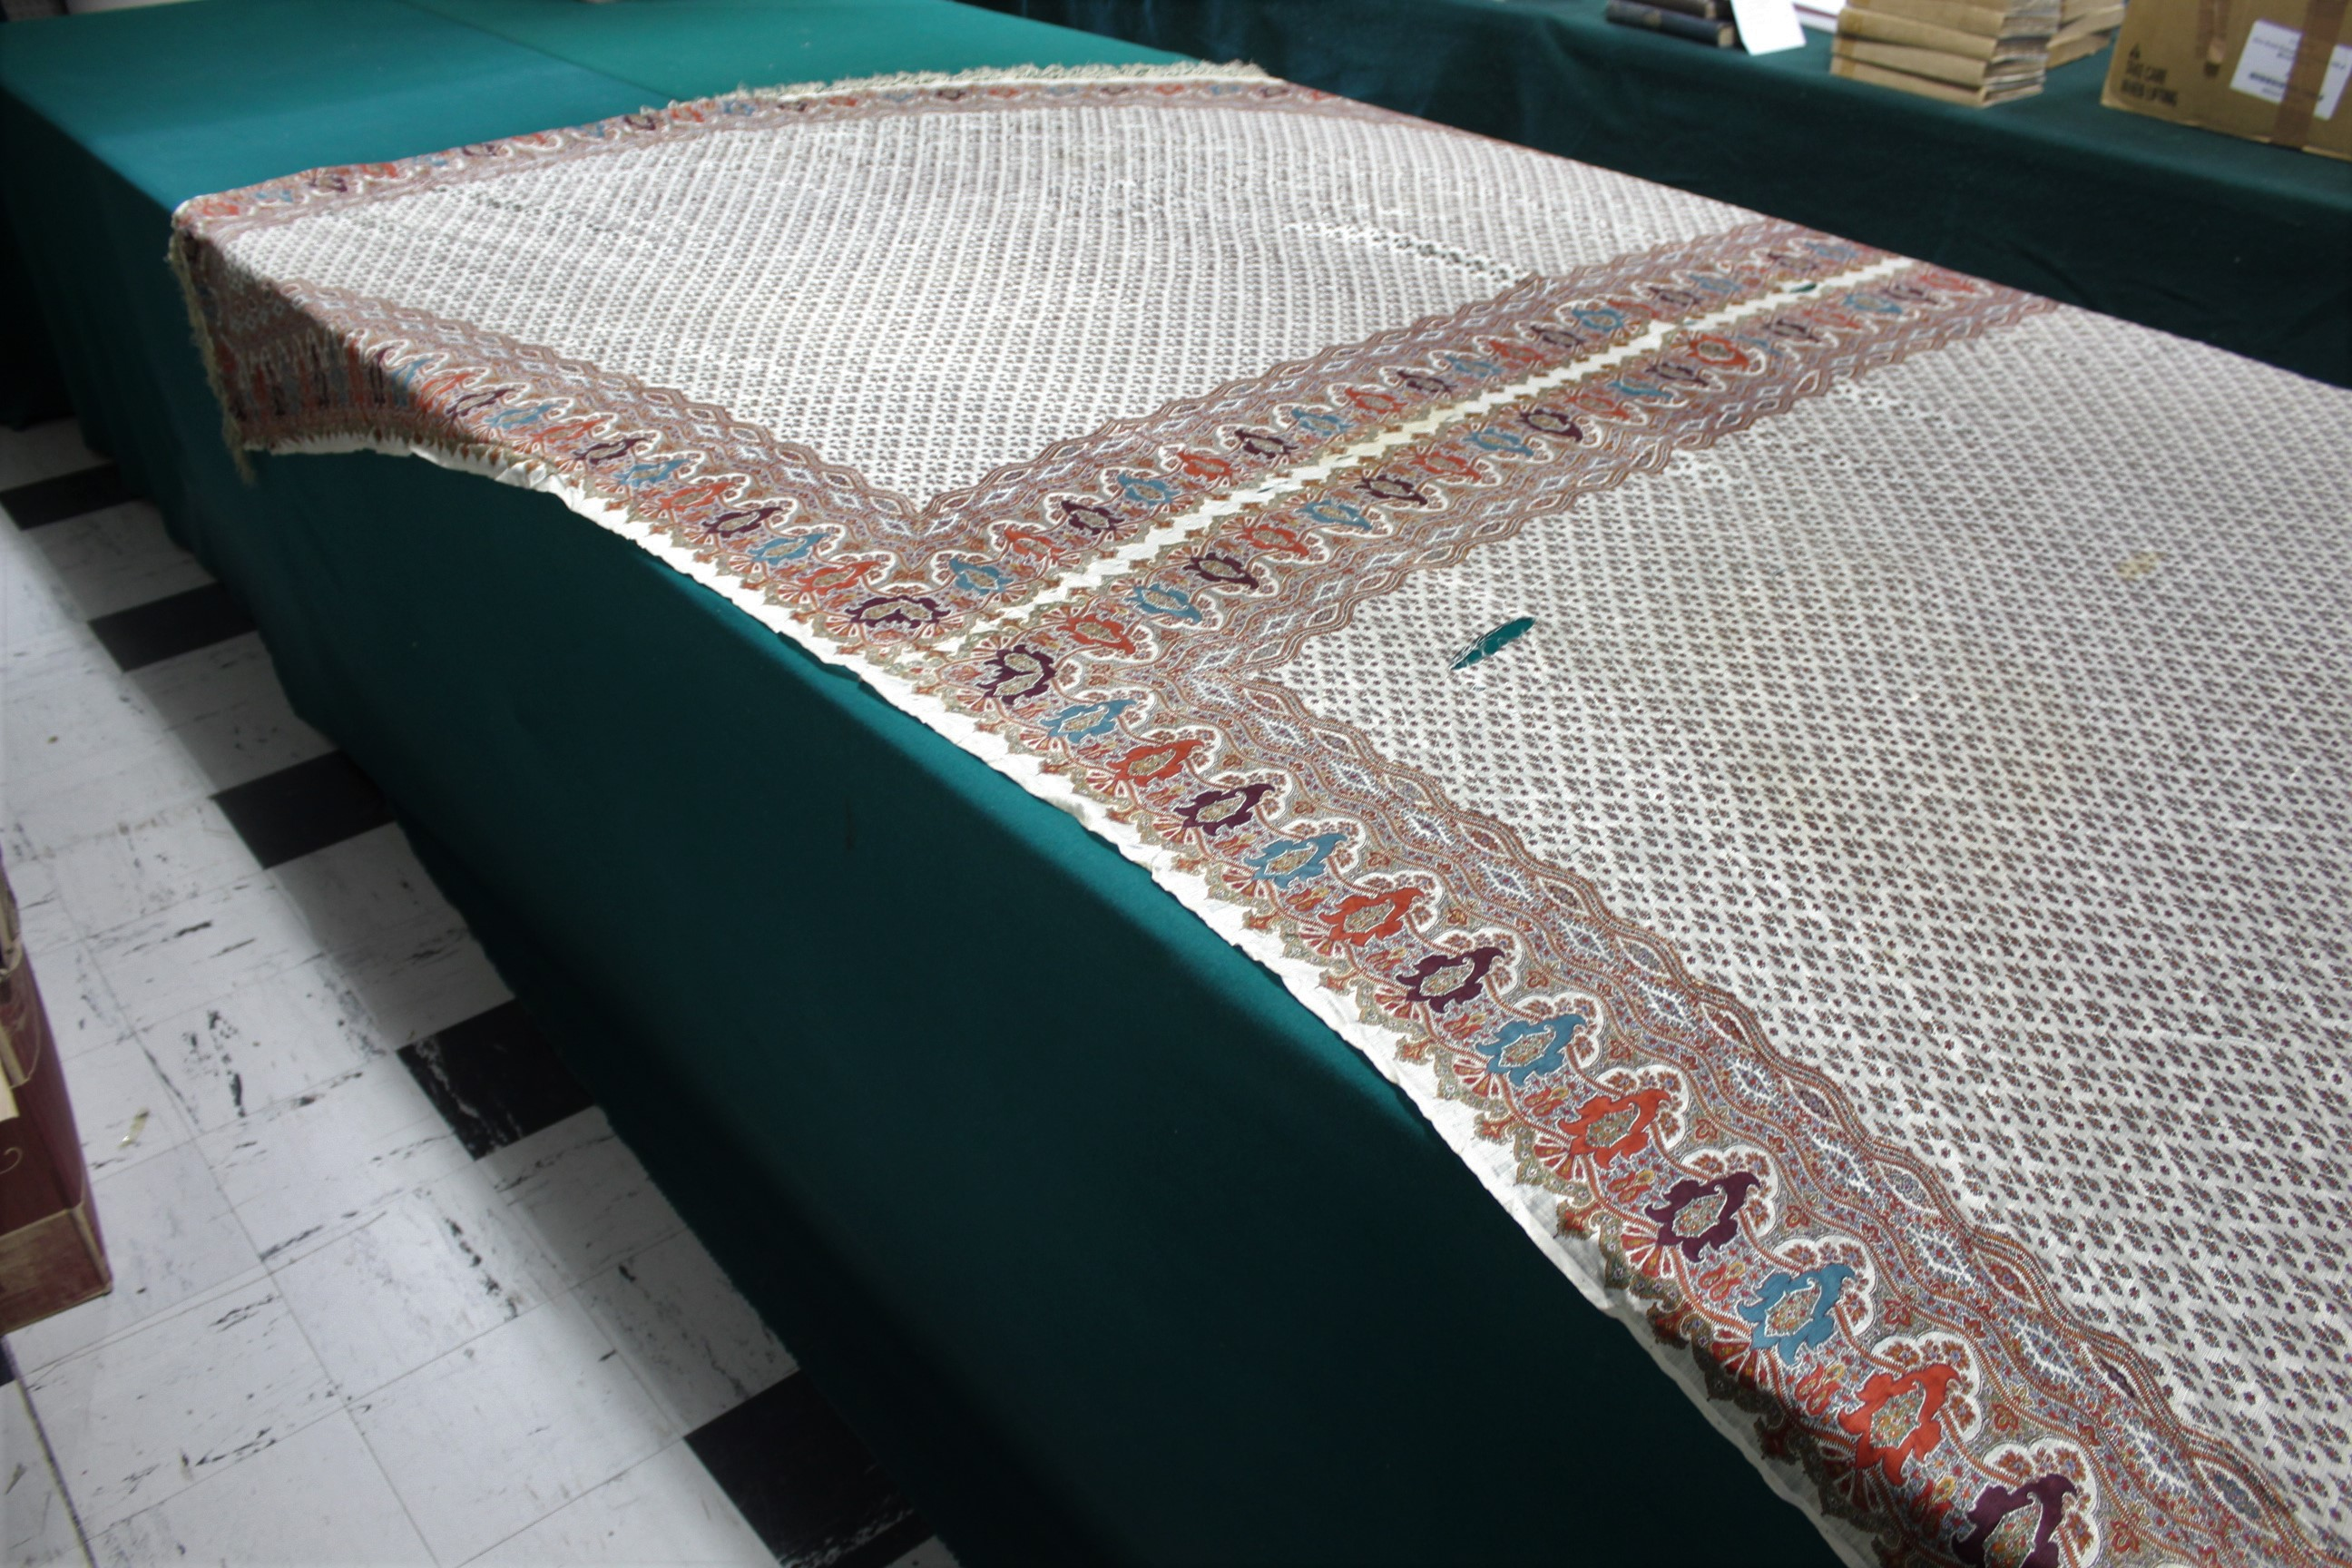 19THC PAISLEY SHAWL a mid 19thc paisley wool cashmere shawl (264cms by 126cms), and also with a fine - Image 9 of 9